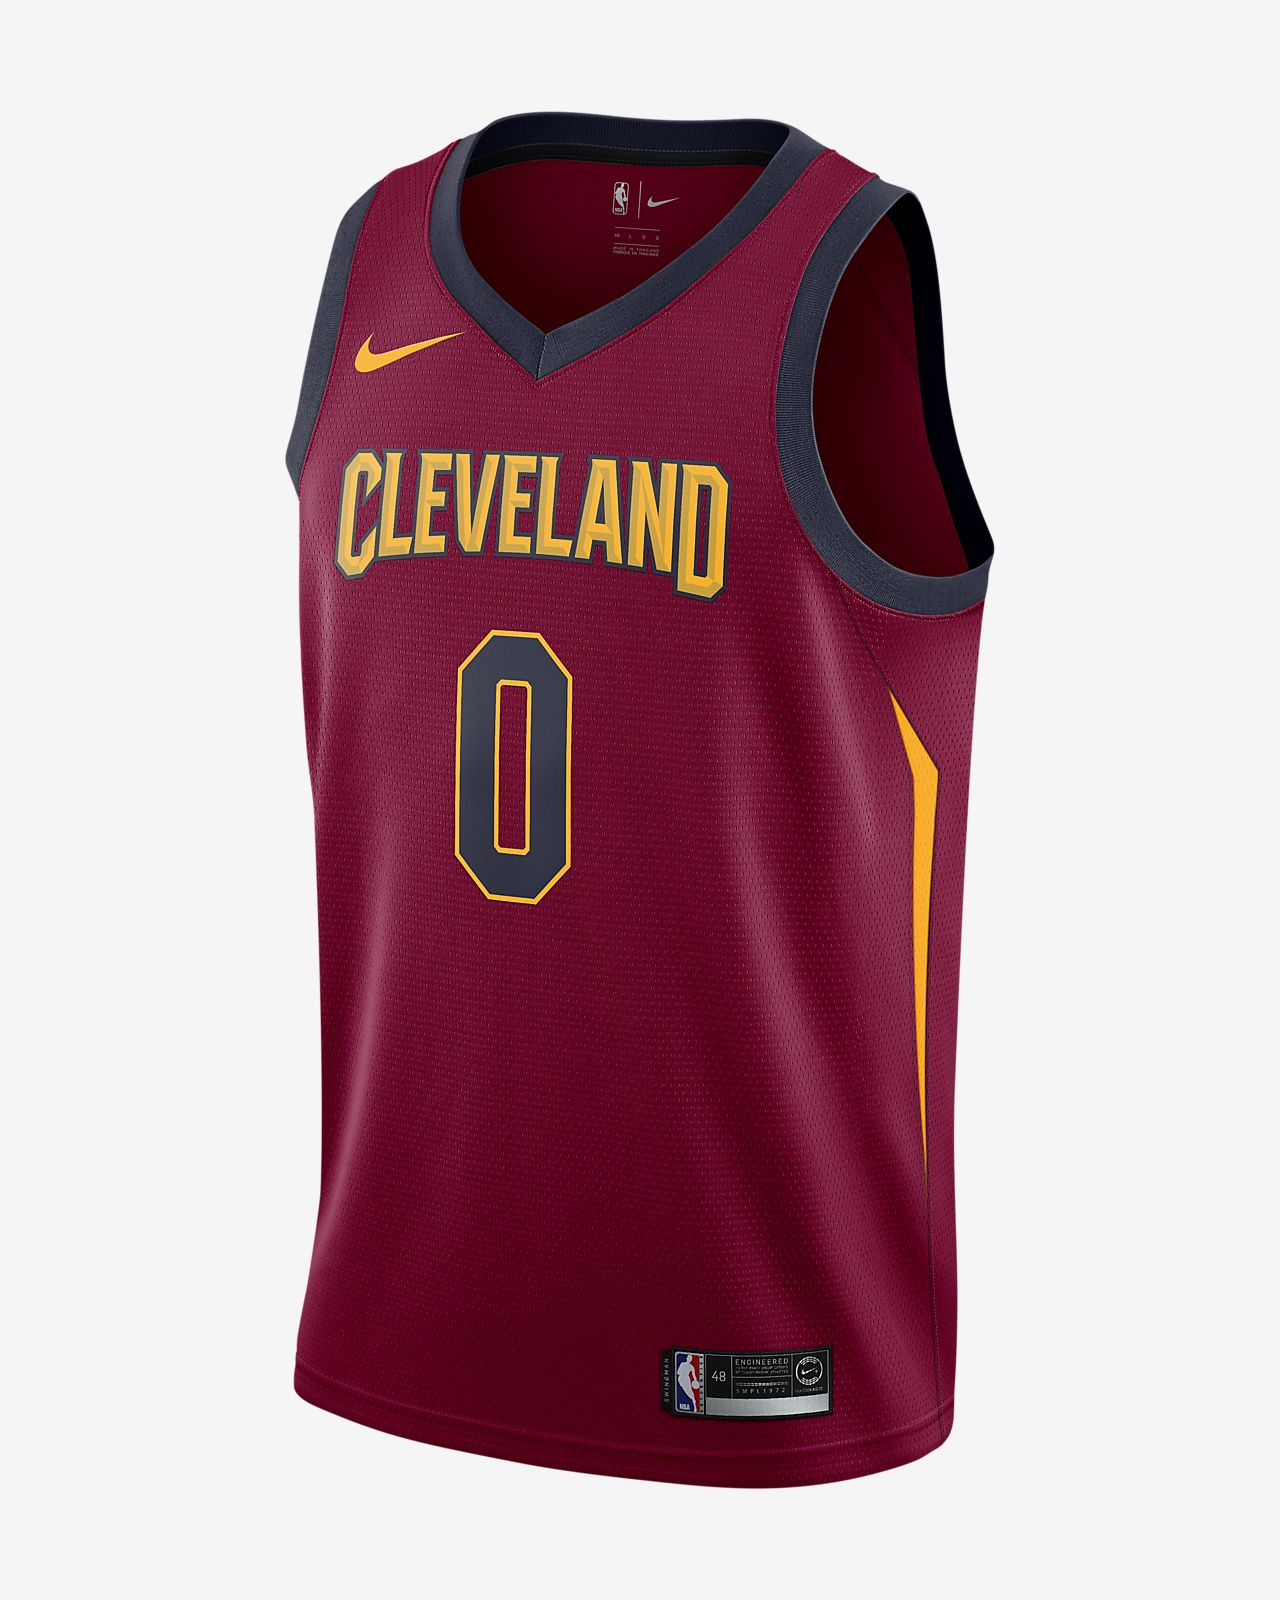 Maillot connecté Nike NBA Kevin Love Icon Edition Swingman (Cleveland Cavaliers) pour Homme